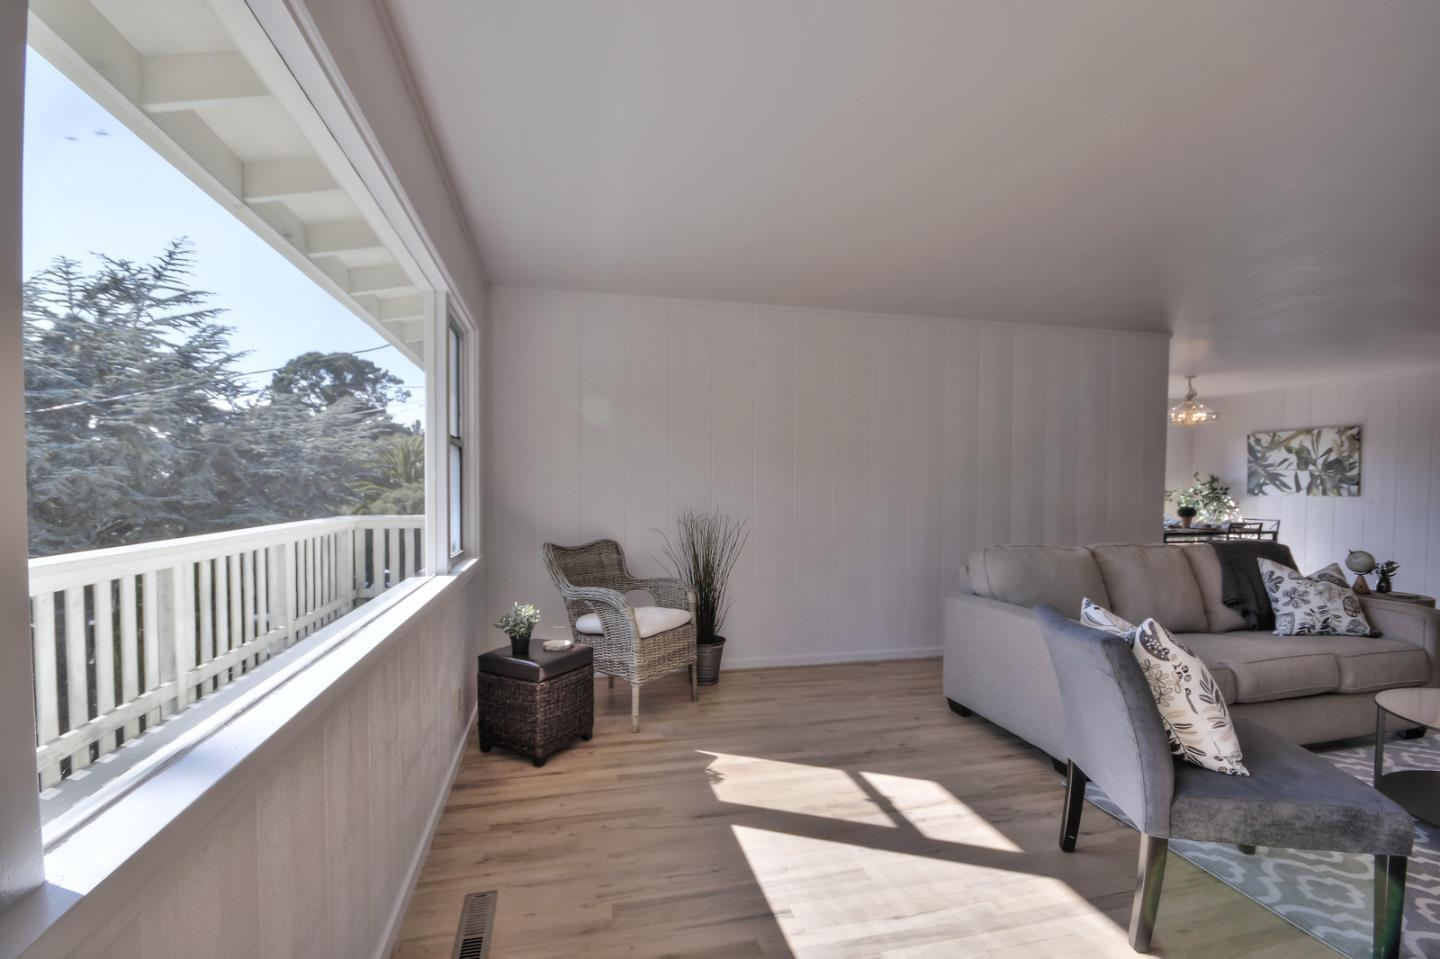 Additional photo for property listing at 712 Lyndon Street  Monterey, California 93940 United States